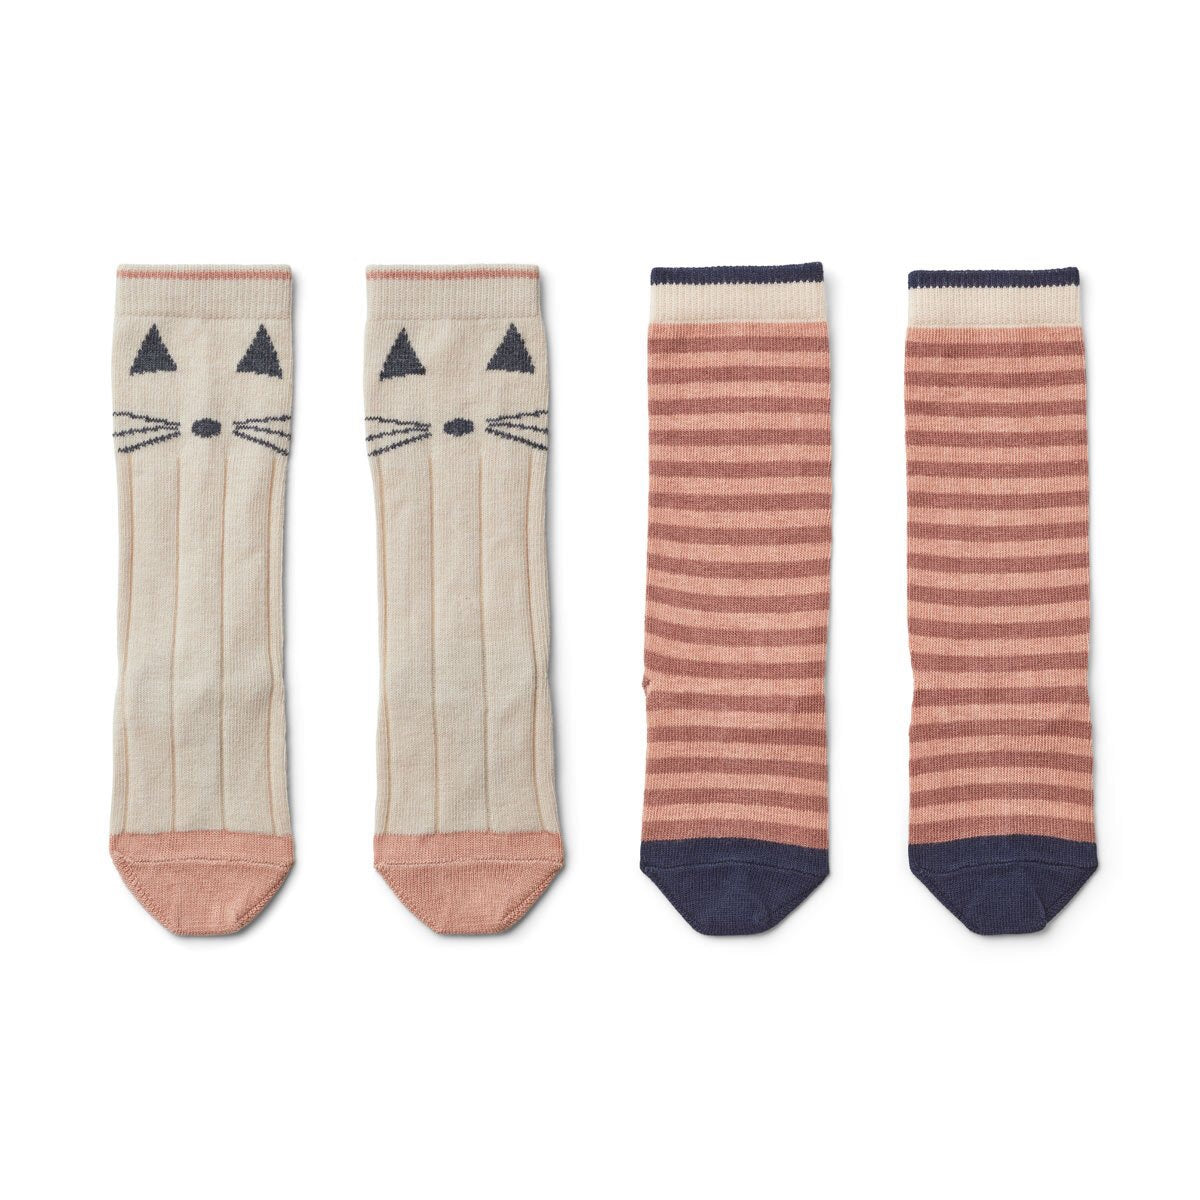 sofia knee socks 2pack - cat/stripe coral blush 貓咪條紋中長襪 (2對裝)